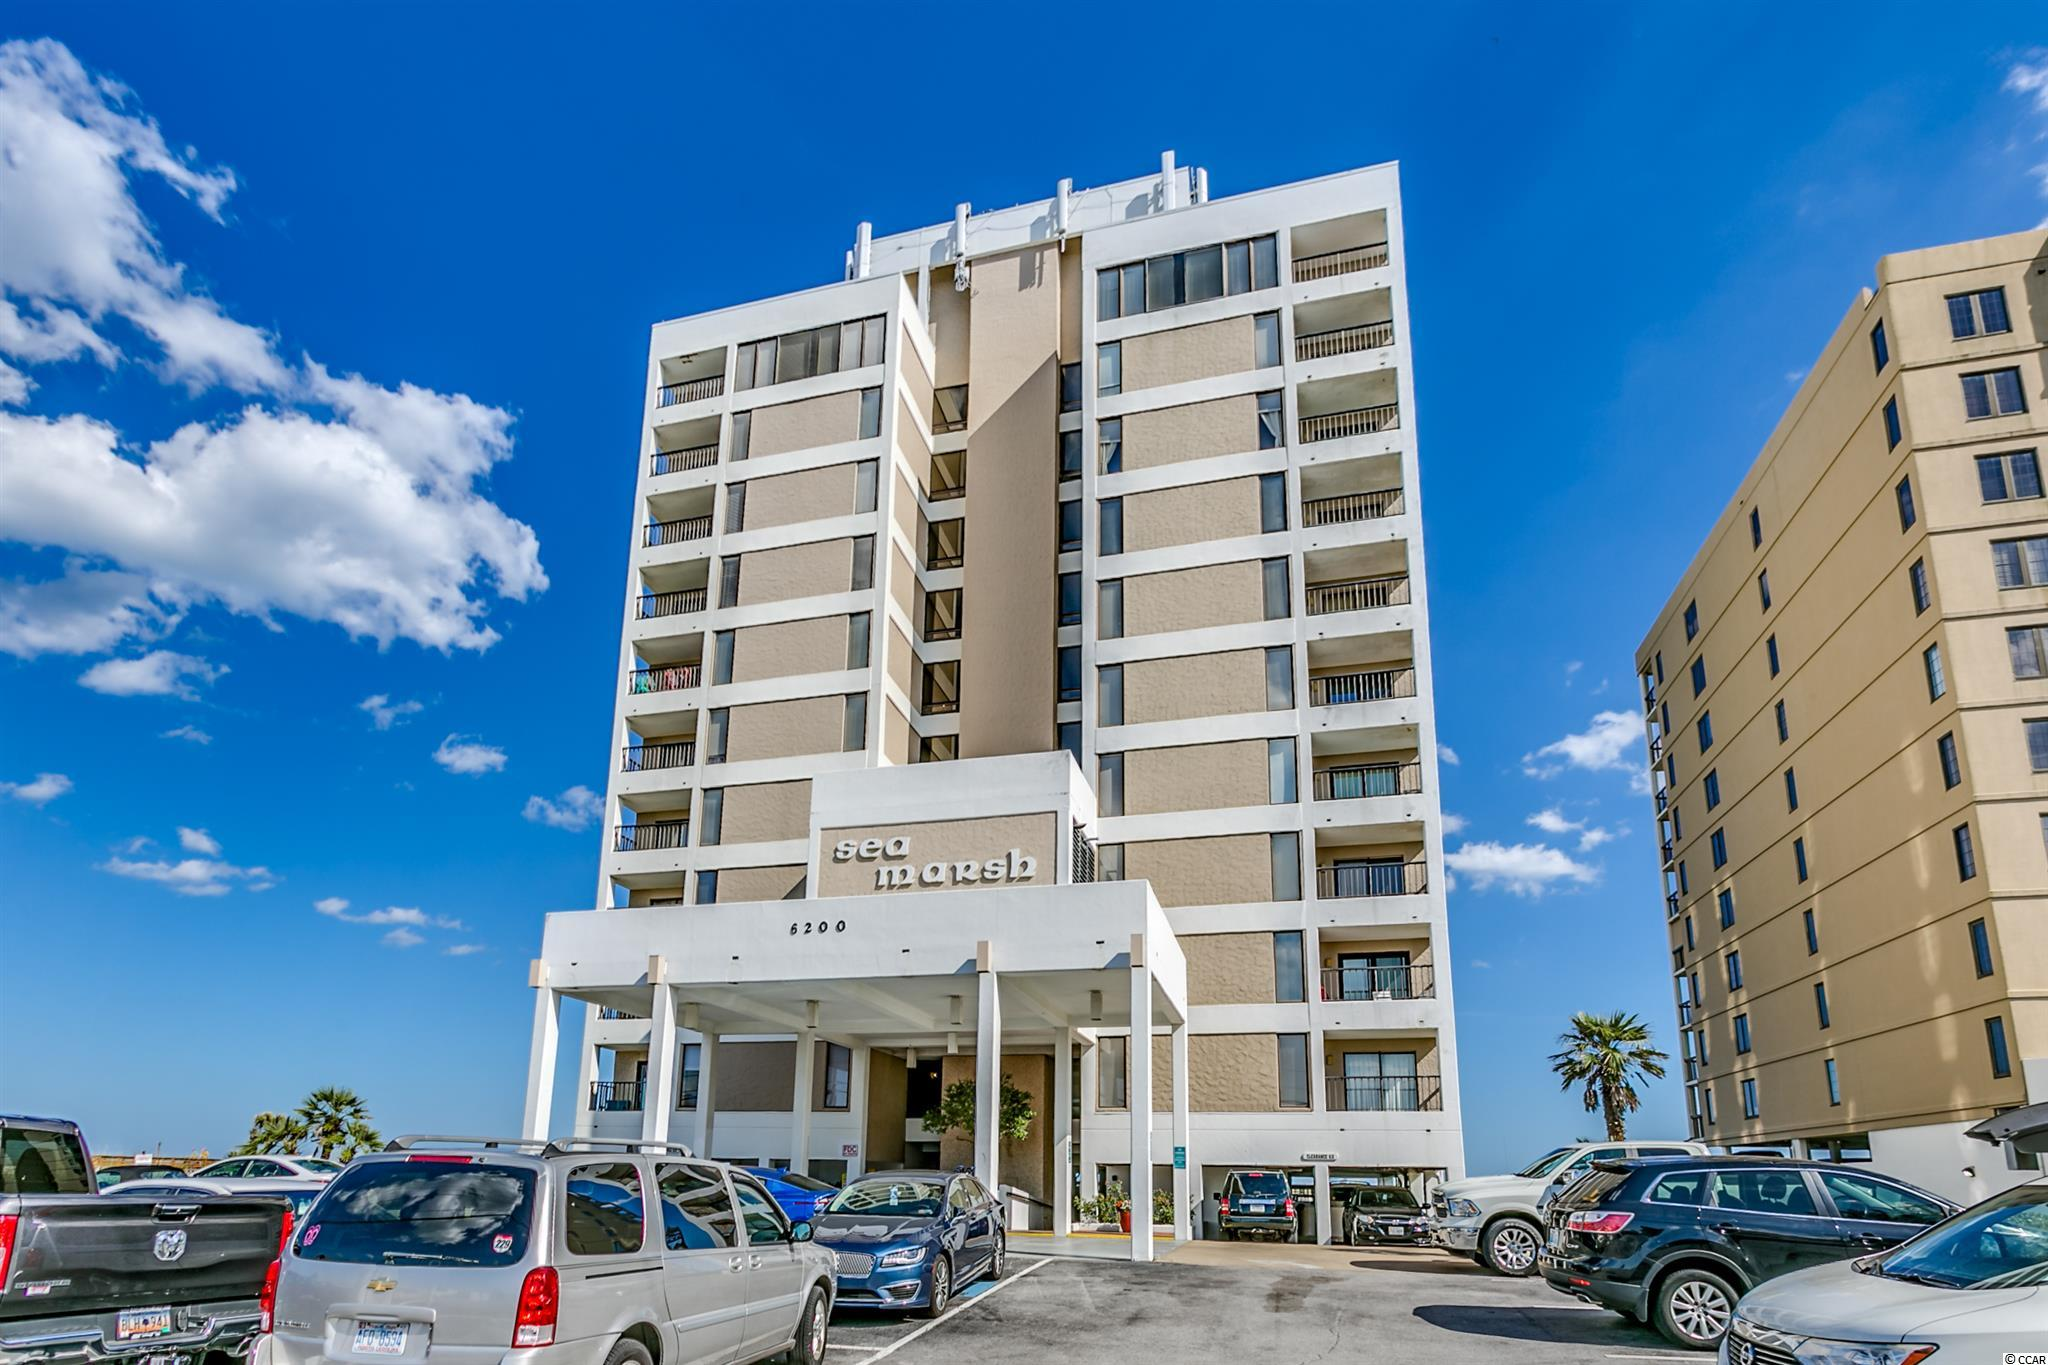 Don't miss this rare opportunity to own an end unit at one of Cherry Grove's most popular complexes!  This is not your typical beach condo and has been lovingly renovated and styled as a second home.  You will find upgrades throughout this three bedroom, three bath condo as Sea Marsh 1.  As you enter the unit a calming turquoise color scheme instantly puts you in a coastal mood.  Luxury vinyl plank flooring has been installed in the living areas in a wide plank, washed wood look. An updated kitchen with gleaming white newer cabinetry and stainless appliances allows for you to prepare meals for family or guests.  The kitchen opens into the large living and dining area to make the perfect gathering place.  Large sliders open onto the oceanfront deck to enjoy the beautiful Atlantic Ocean views.  The sliders were recently replaced in 2019.  The view is even better with the end unit location and nothing is obstructing the view to the south down the coast line. Side windows also allow in plenty of light into the condo.  Heavy white crown molding also adds a custom tailored look to the living space.   You will find the master suite at the end of the hallway and it is truly an owners getaway complete with a private bath.  A small balcony with access from the bedroom provides a fantastic view of the Cherry Grove marsh.  Two other hall bedrooms allow for guest or family use.  The condo has been styled in a sophisticated coastal theme and comes fully furnished with all appliances and decor, minus some exclusions.  All furnishings are high quality and appear like new with very little wear.  Other upgrades in this condo include fresh paint in 2019 with smooth ceilings, upgraded plumbing fixtures and lighting, new HVAC in 2020 and recessed lighting.  This condo is turnkey and ready for new owners to enjoy!   Sea Marsh 1 is an extremely popular complex with a prime Cherry Grove location adjacent to the inlet. Units do not come available often. Outdoor pool with paver patio and bea